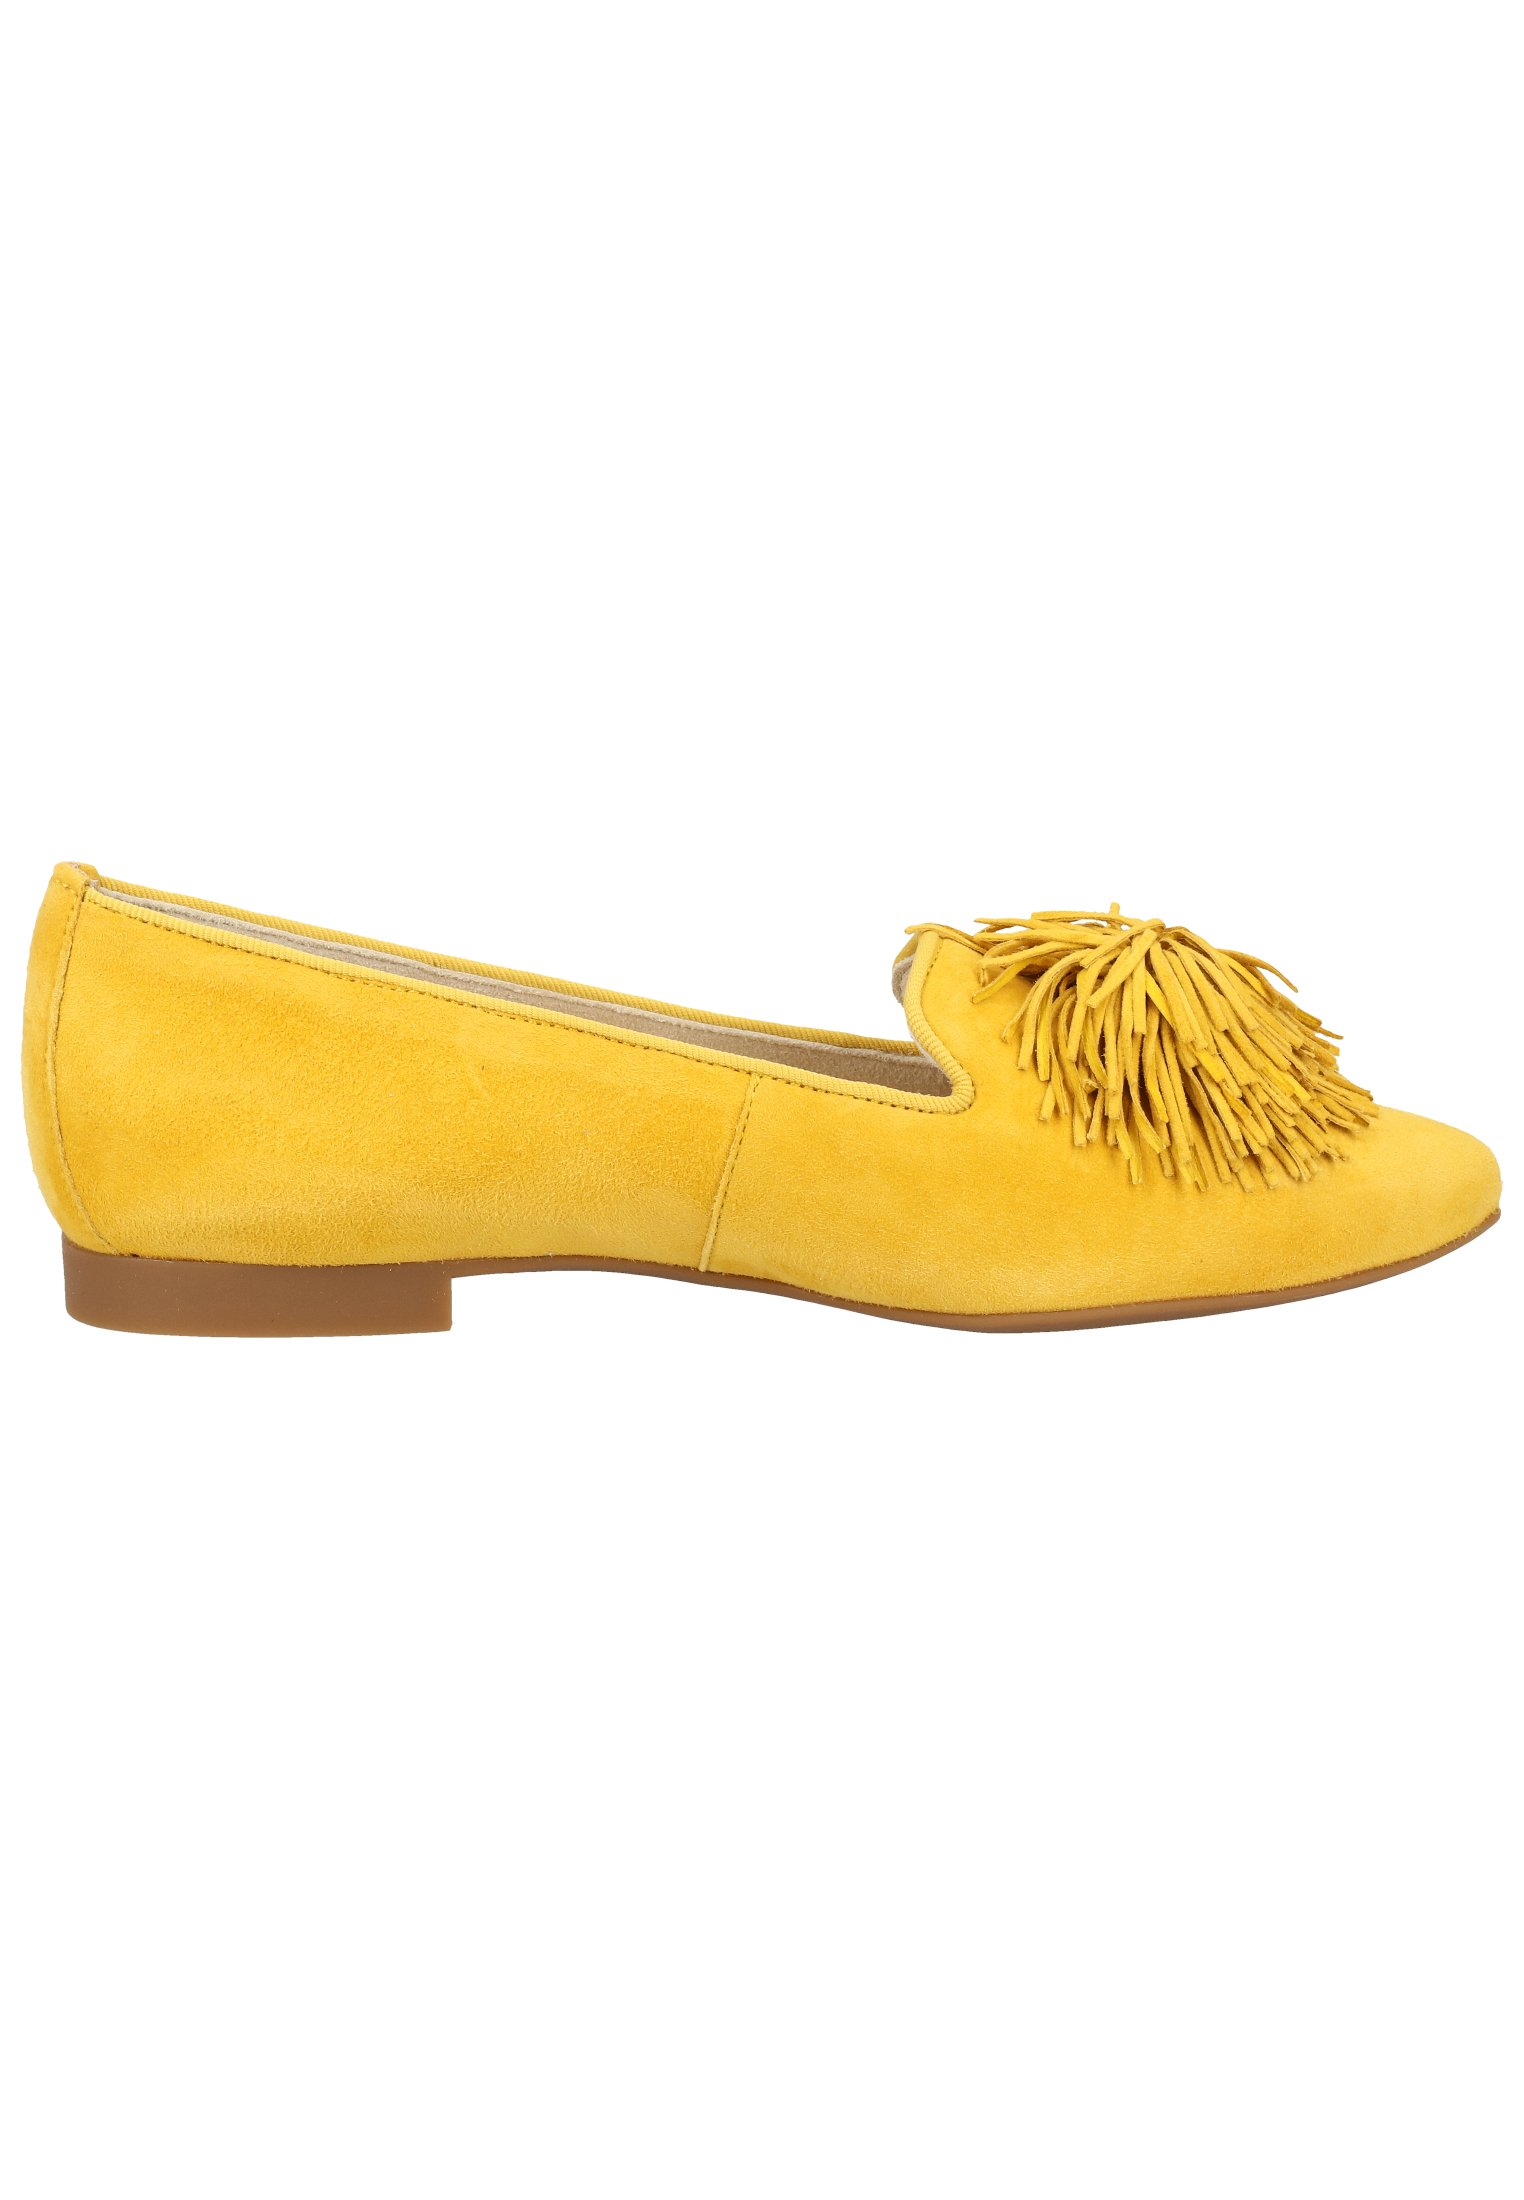 Paul Green Loafers - yellow